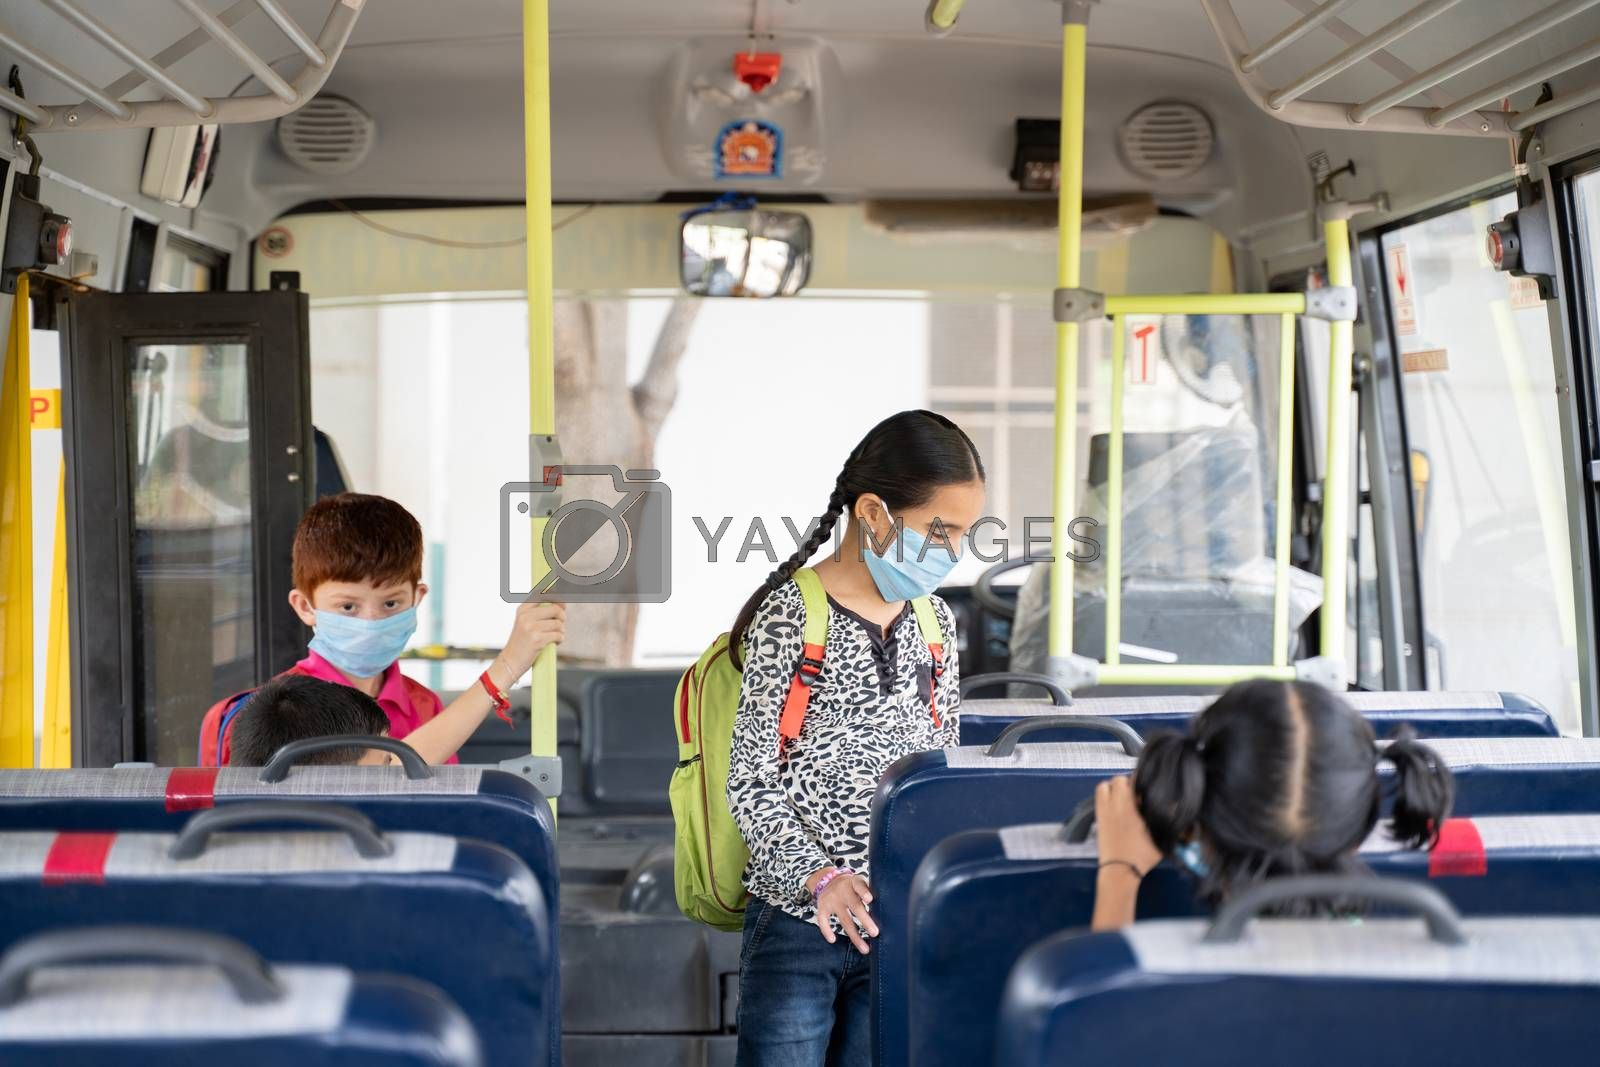 Kids with medical mask coming inside school bus and sitting on seats while maintaining social distance due to coronavirus or covid-19 pandemic - Concept of school reopen or back to school.